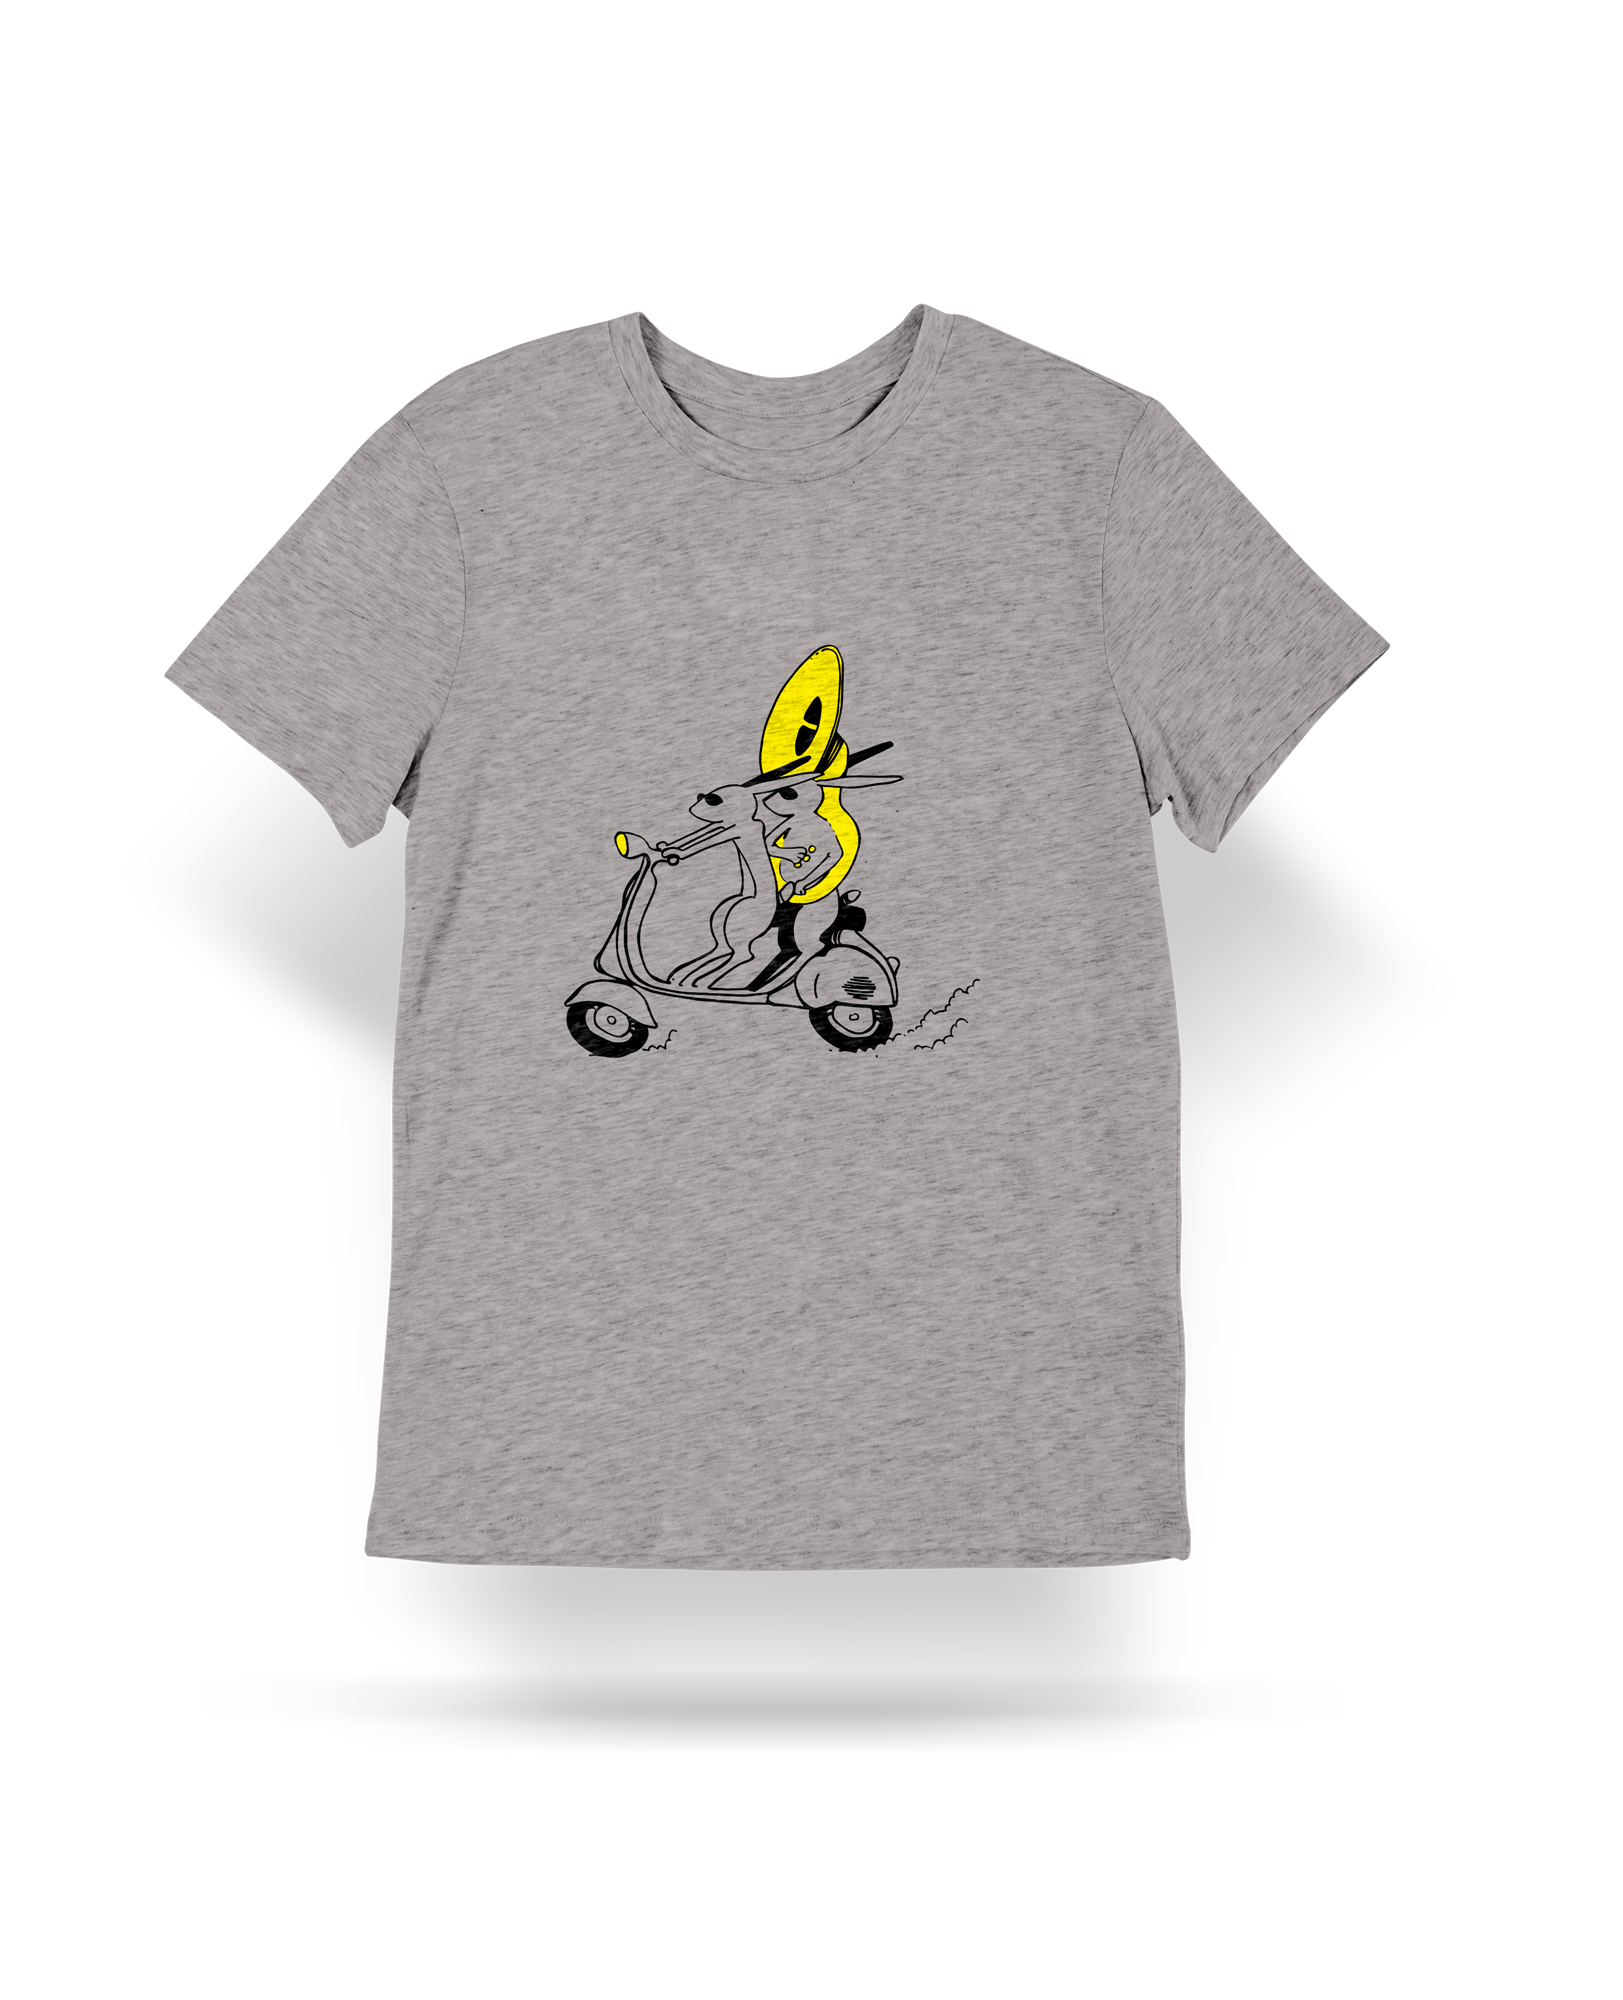 TEE-SHIRT LAPIN SCOOTER ENFANT